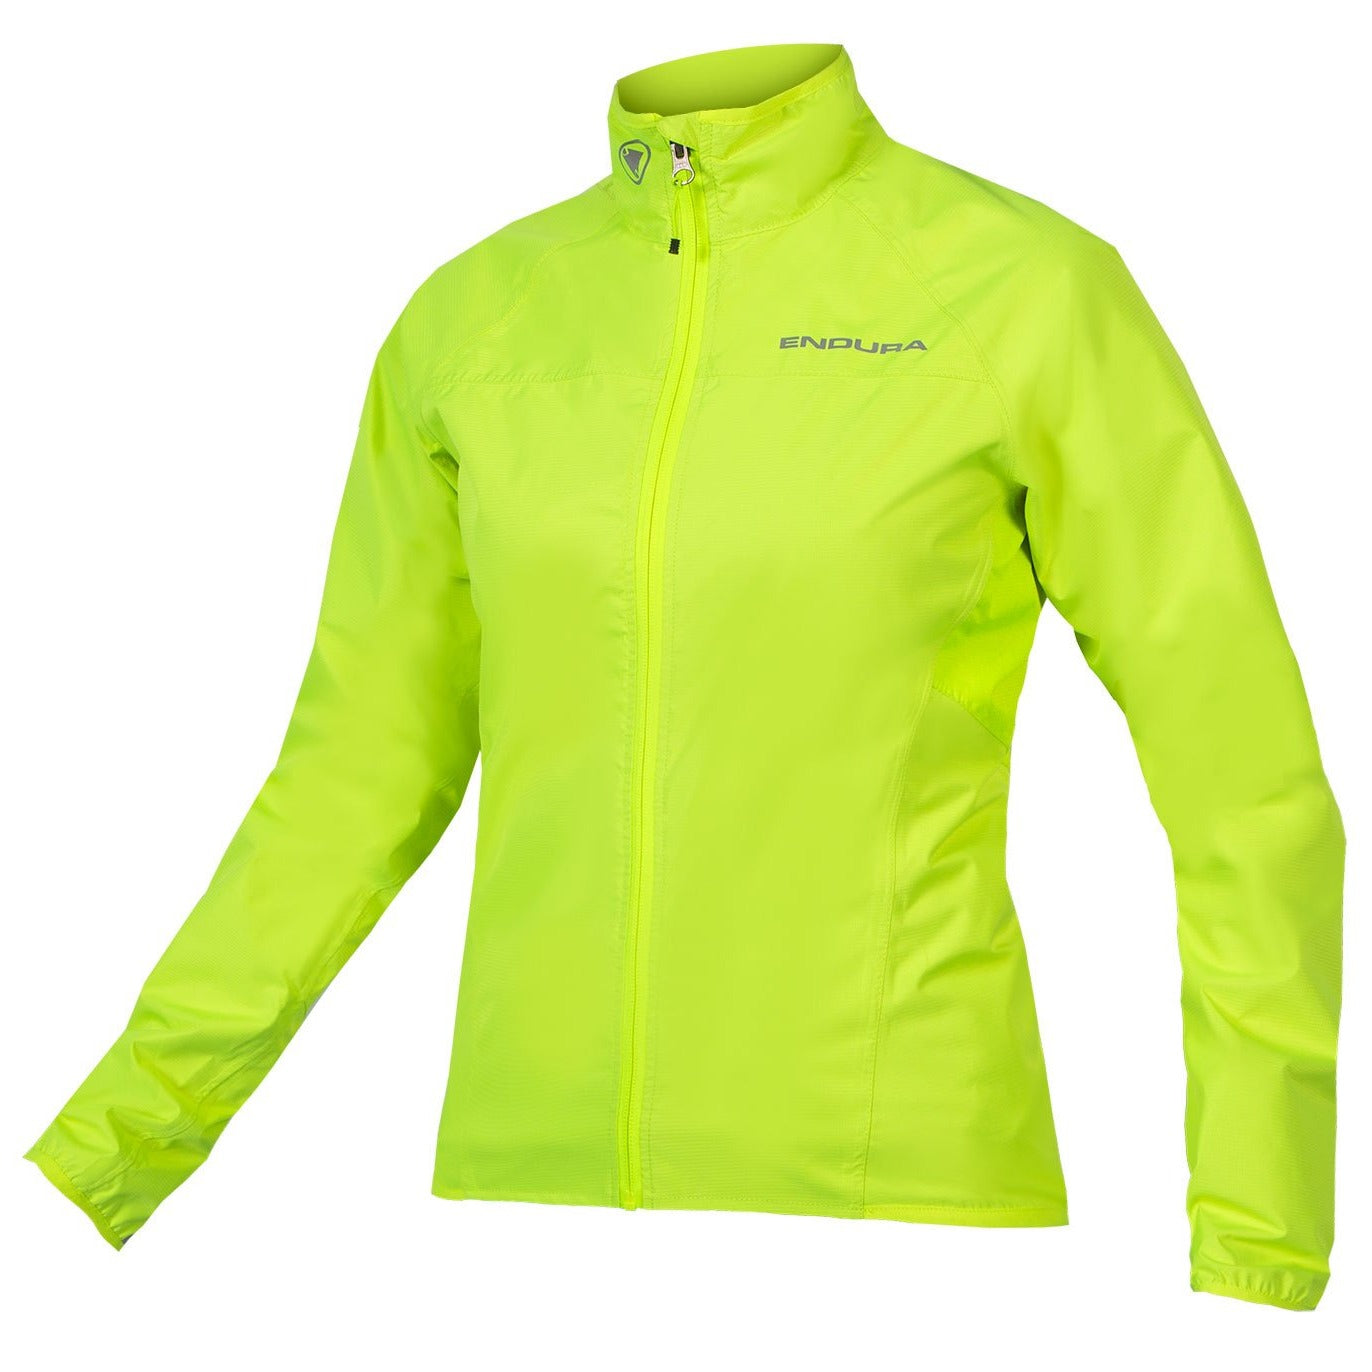 Endura Xtract Jacket II - HiVizYellow | VeloVixen